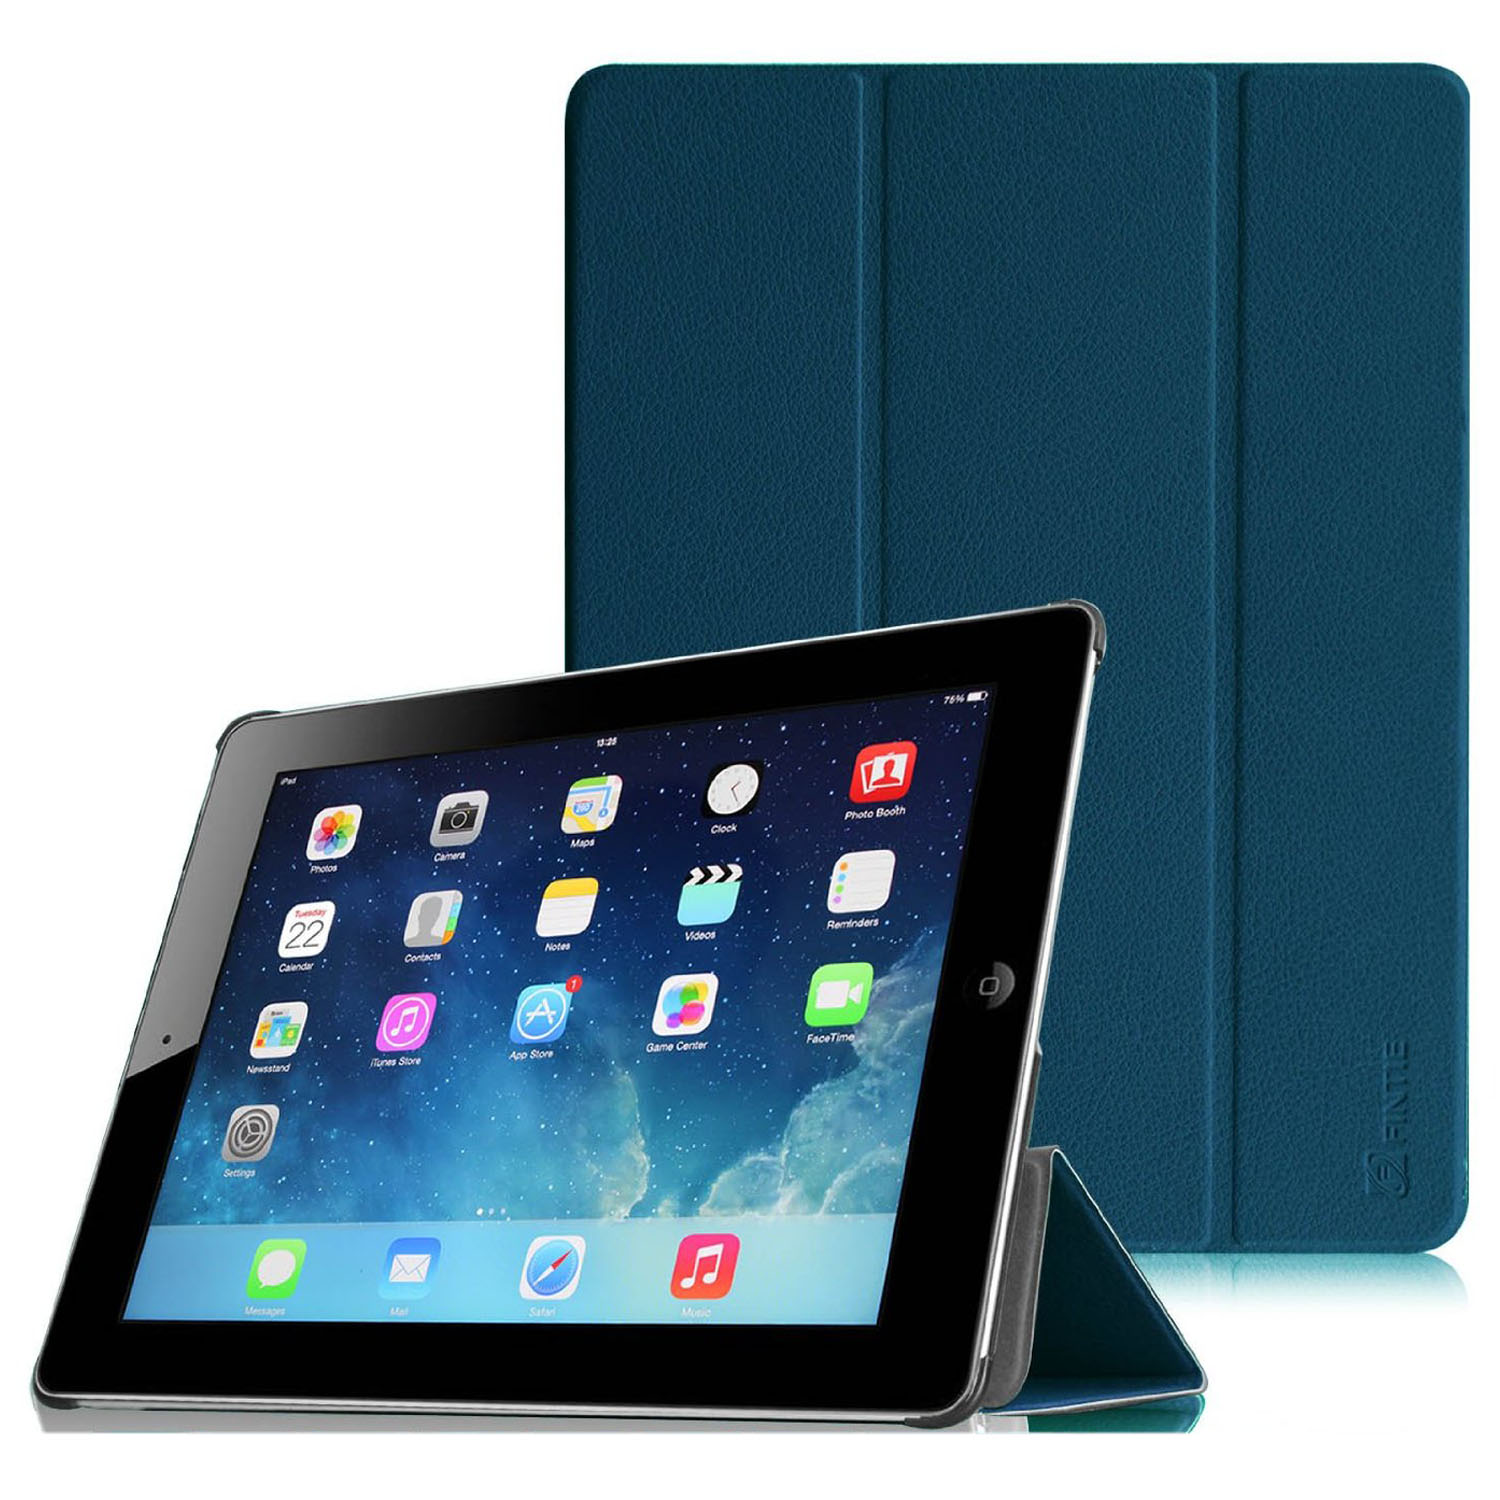 Fintie SmartShell Case for Apple iPad 4th Generation with Retina Display, iPad 3 & iPad 2, Navy